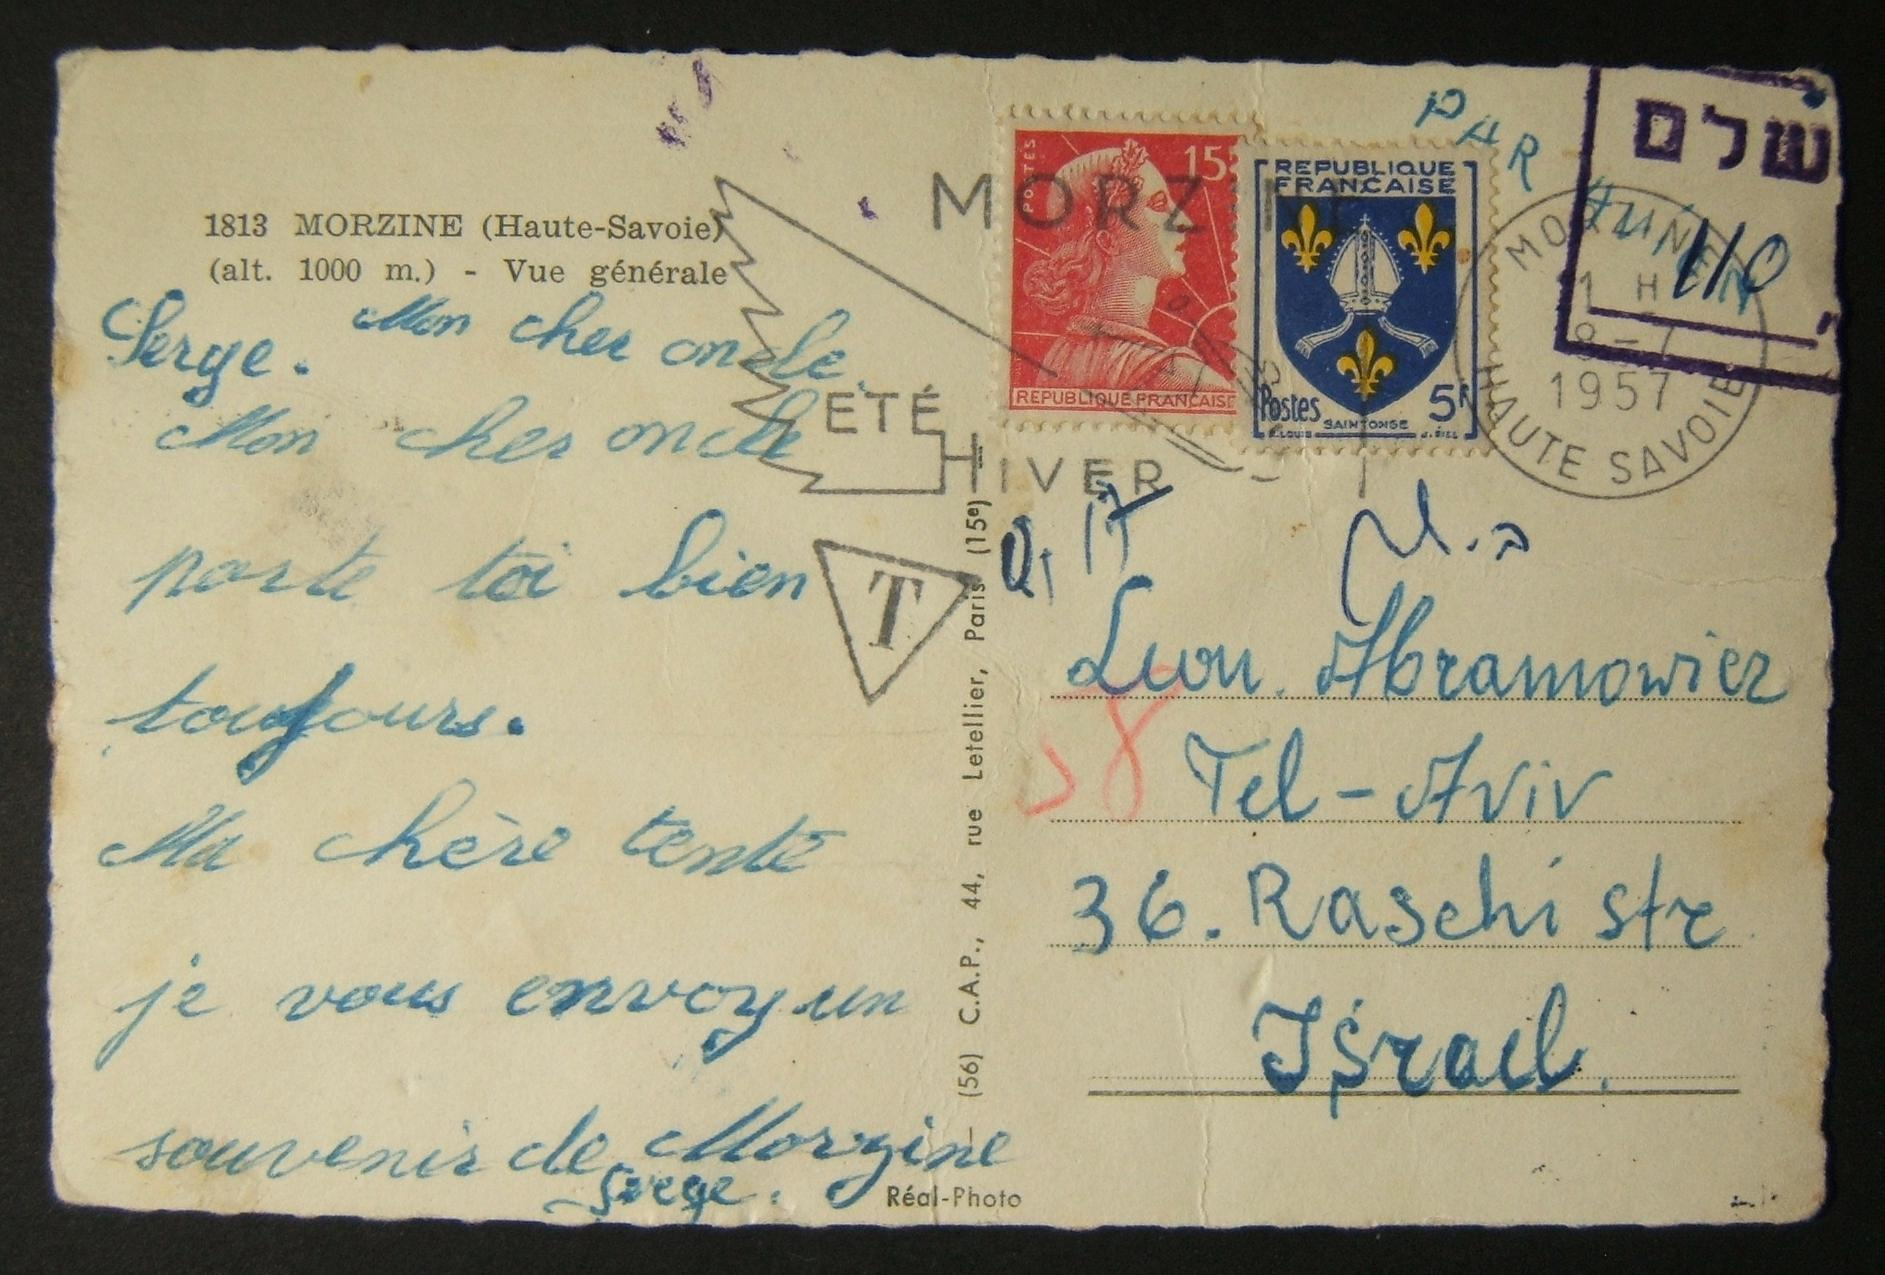 1957 incoming French taxed mail: 18-7-1957 airmail ppc Morzine ex MORZINE to TLV underfranked at 20F and taxed in Israel 110pr.